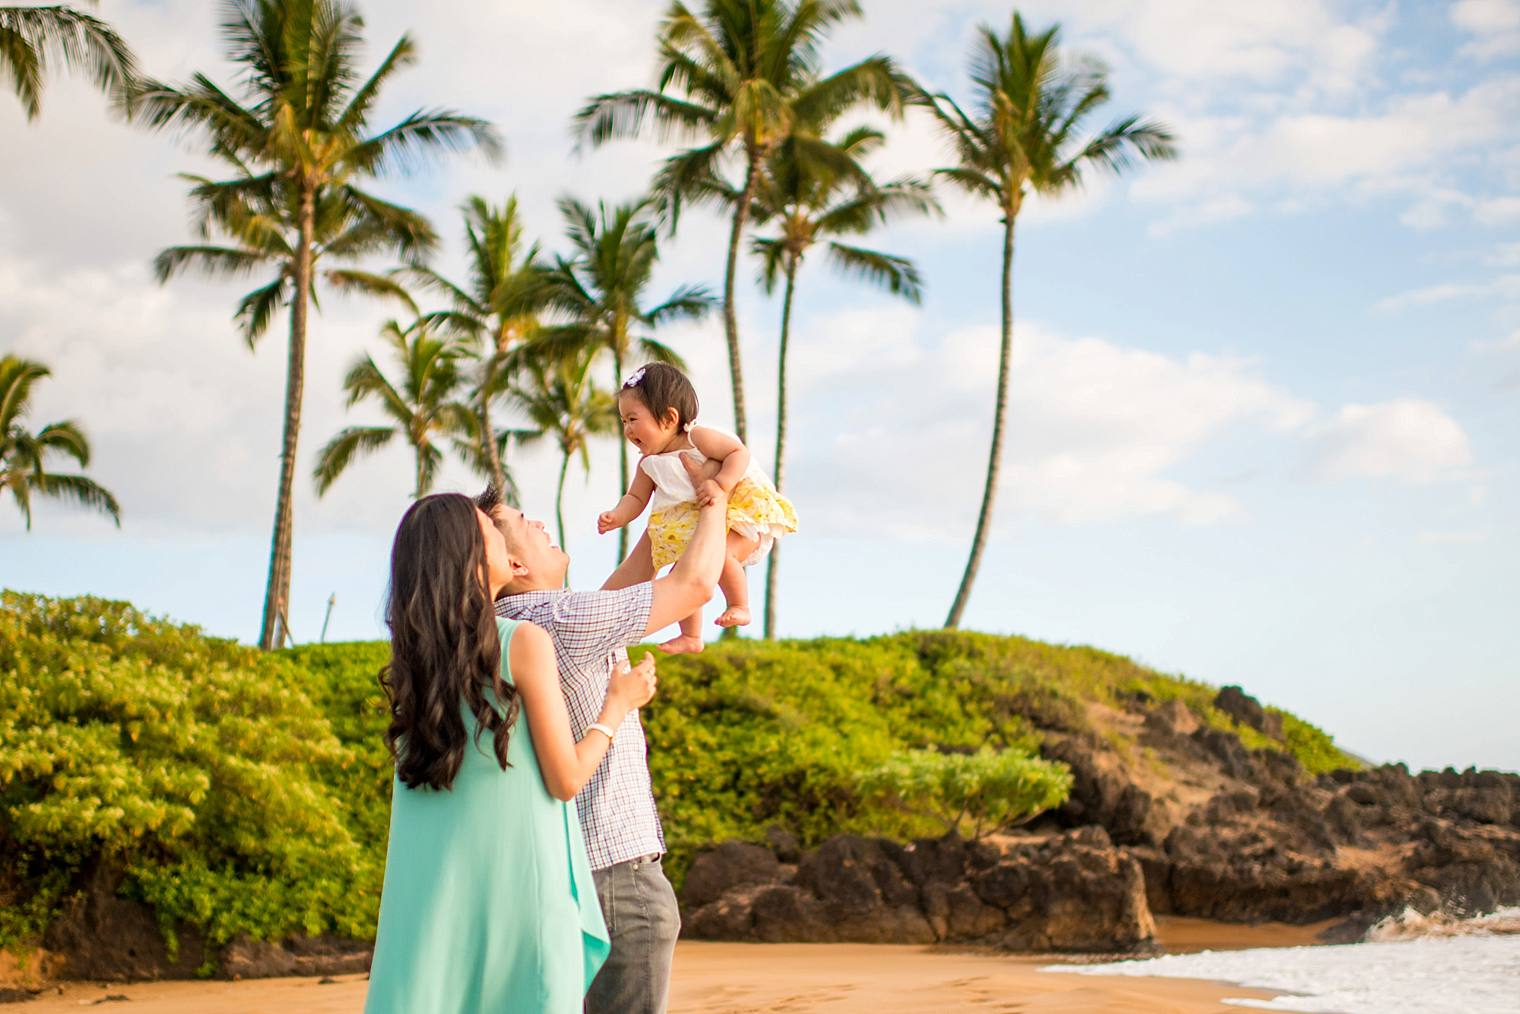 family playing with their daughter on the beach in maui